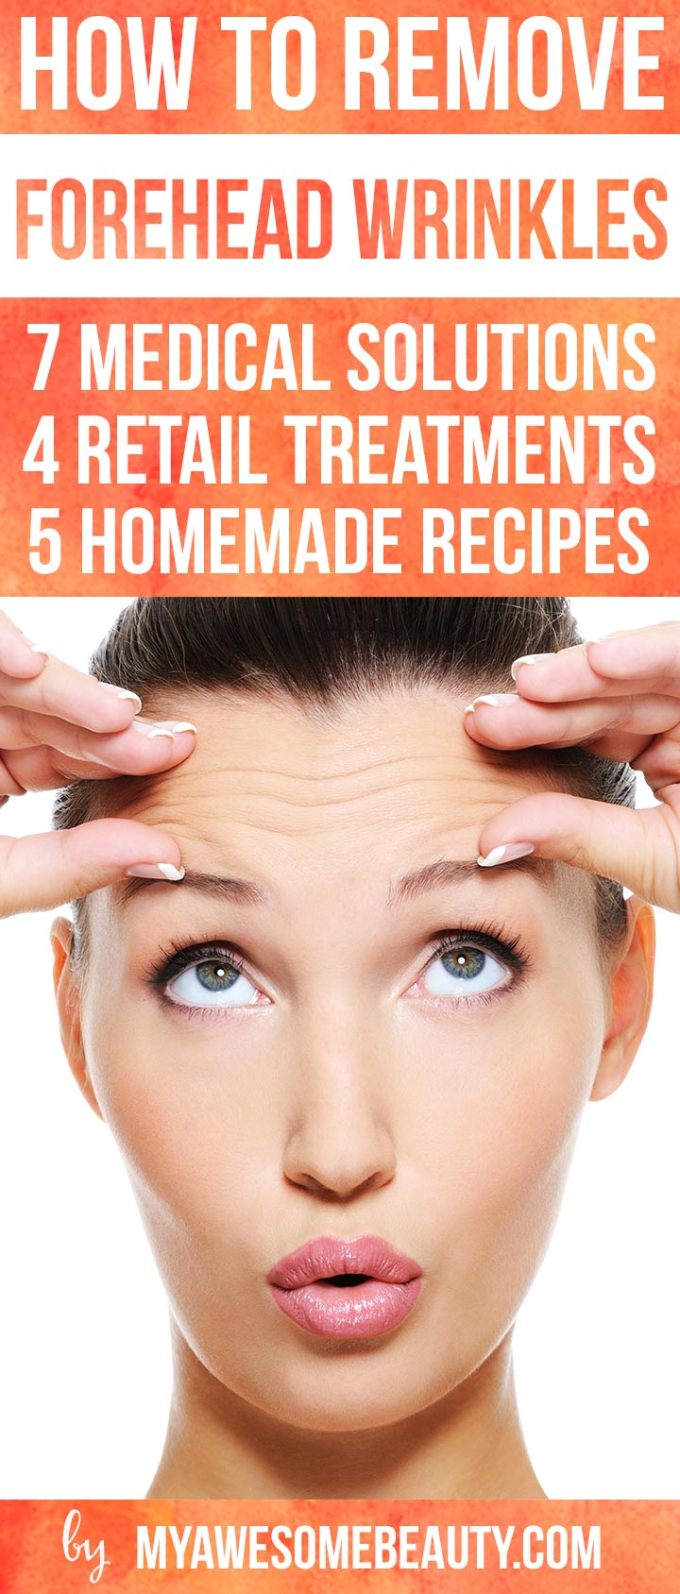 how to get rid of forehead wrinkles fast | 16 methods